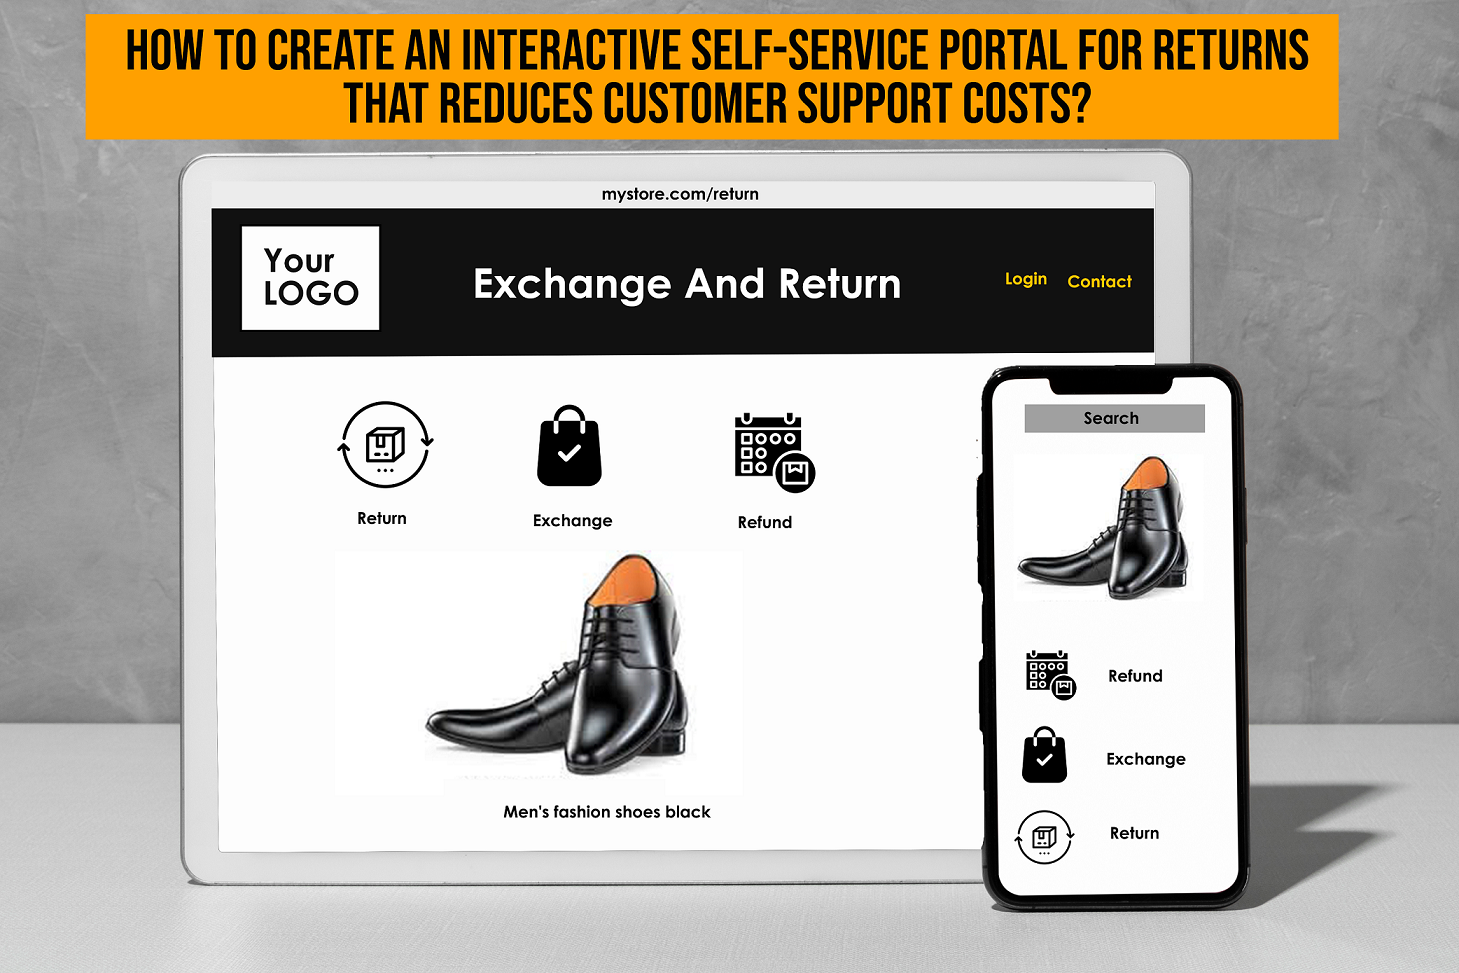 How to create an interactive self-service portal for returns that reduces customer support costs?